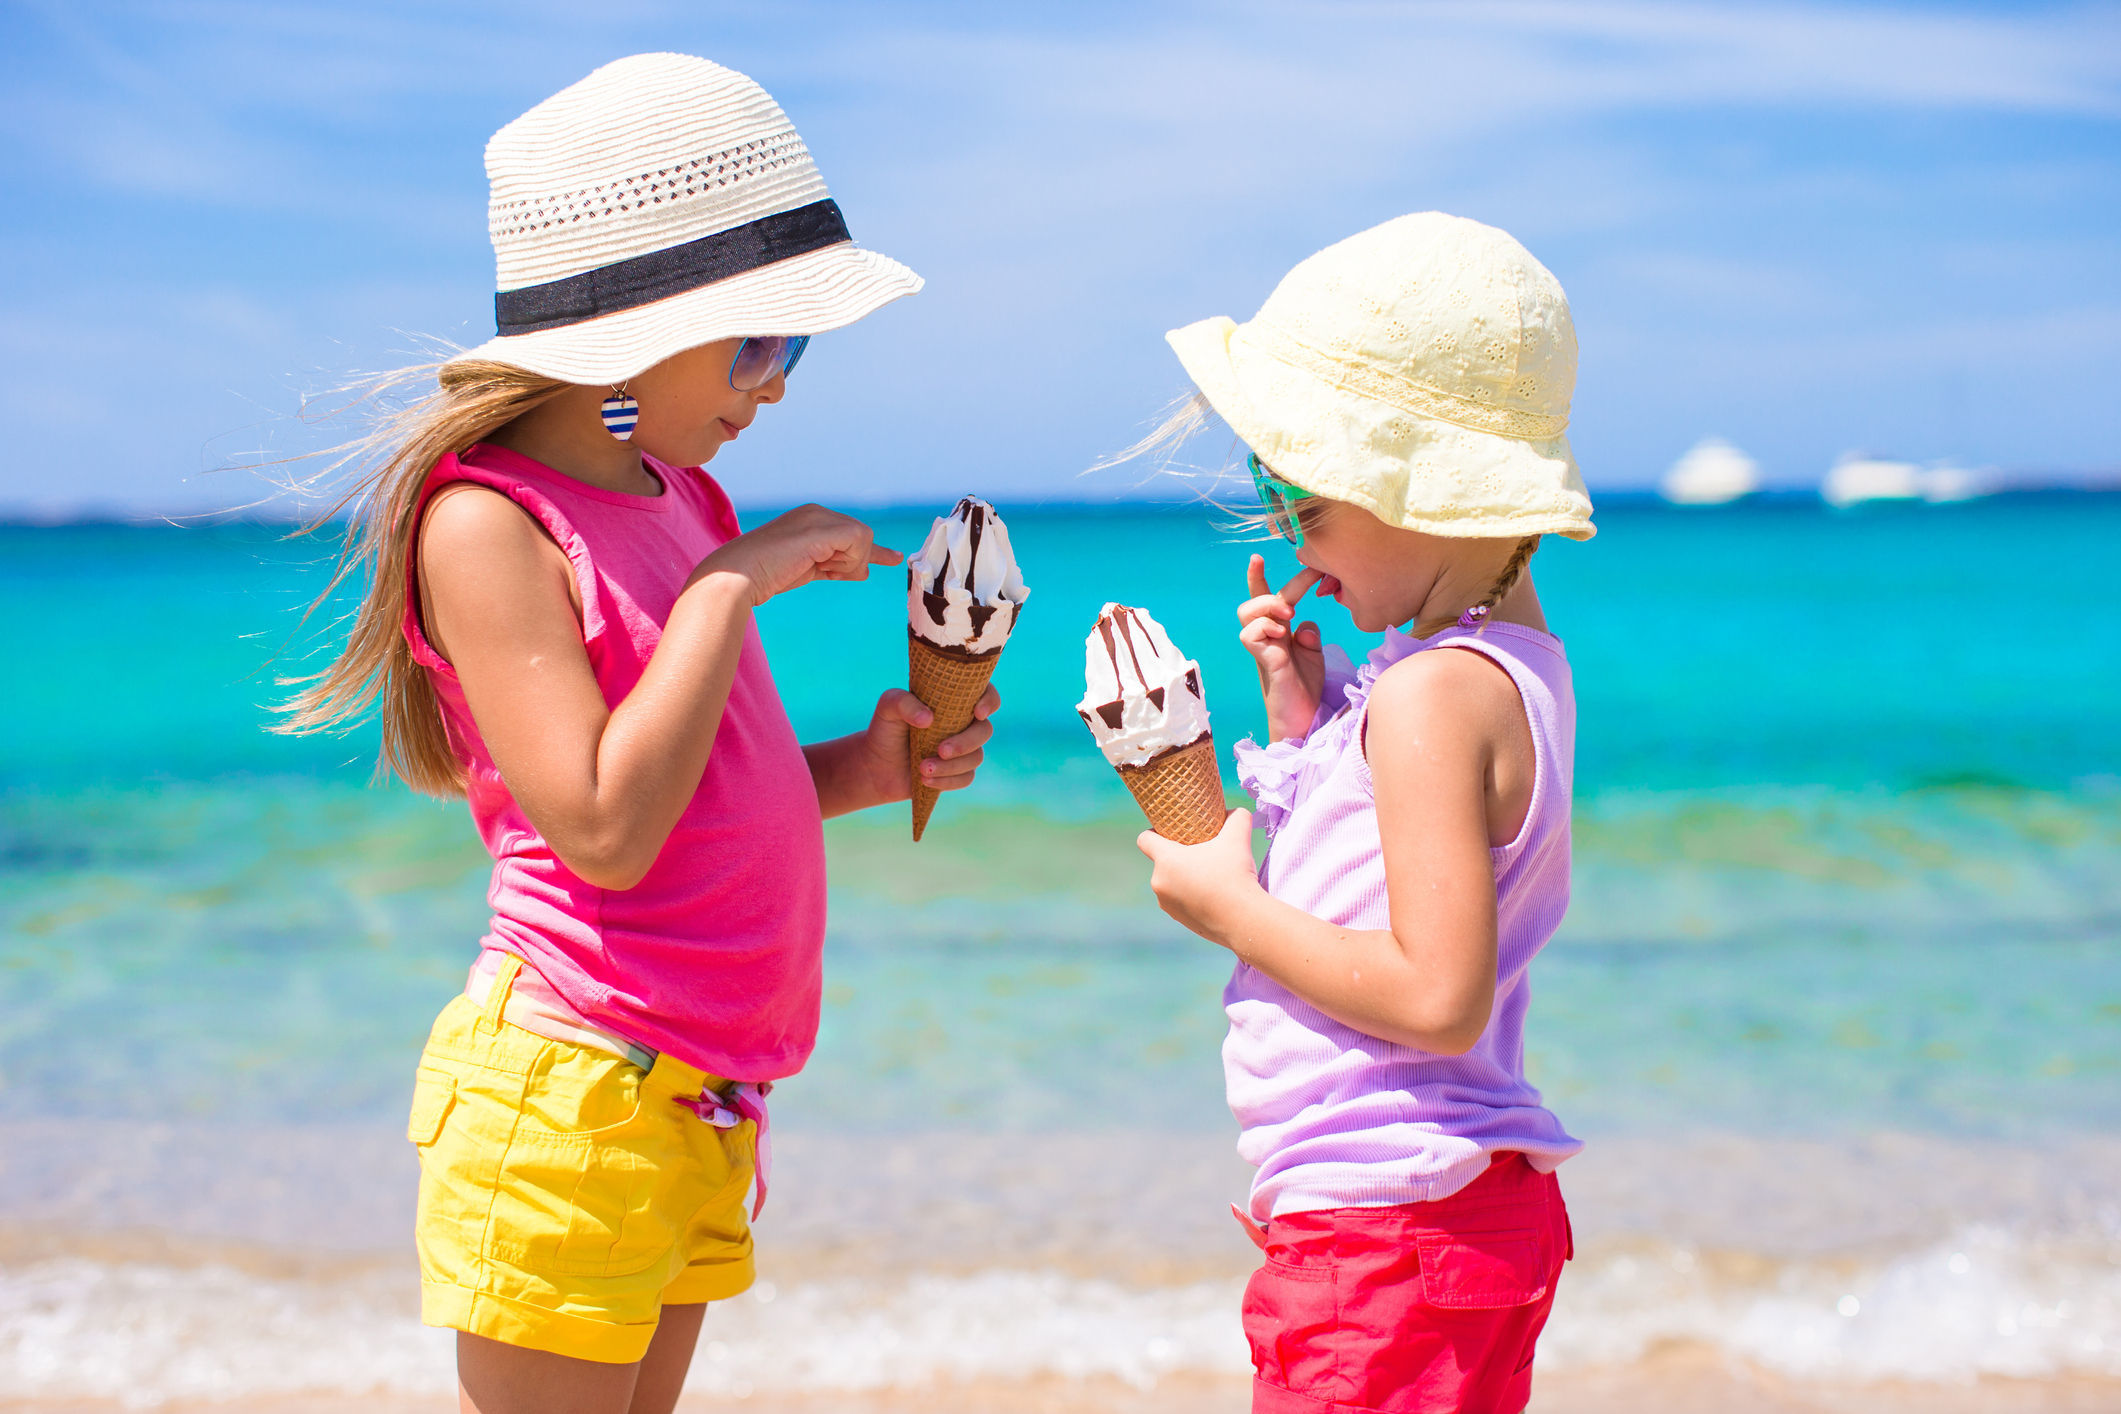 Happy little girls eating ice-cream over summer beach background. People, children, friends and friendship concept (Happy little girls eating ice-cream over summer beach background. People, children, friends and friendship concept, Byte, 230 component